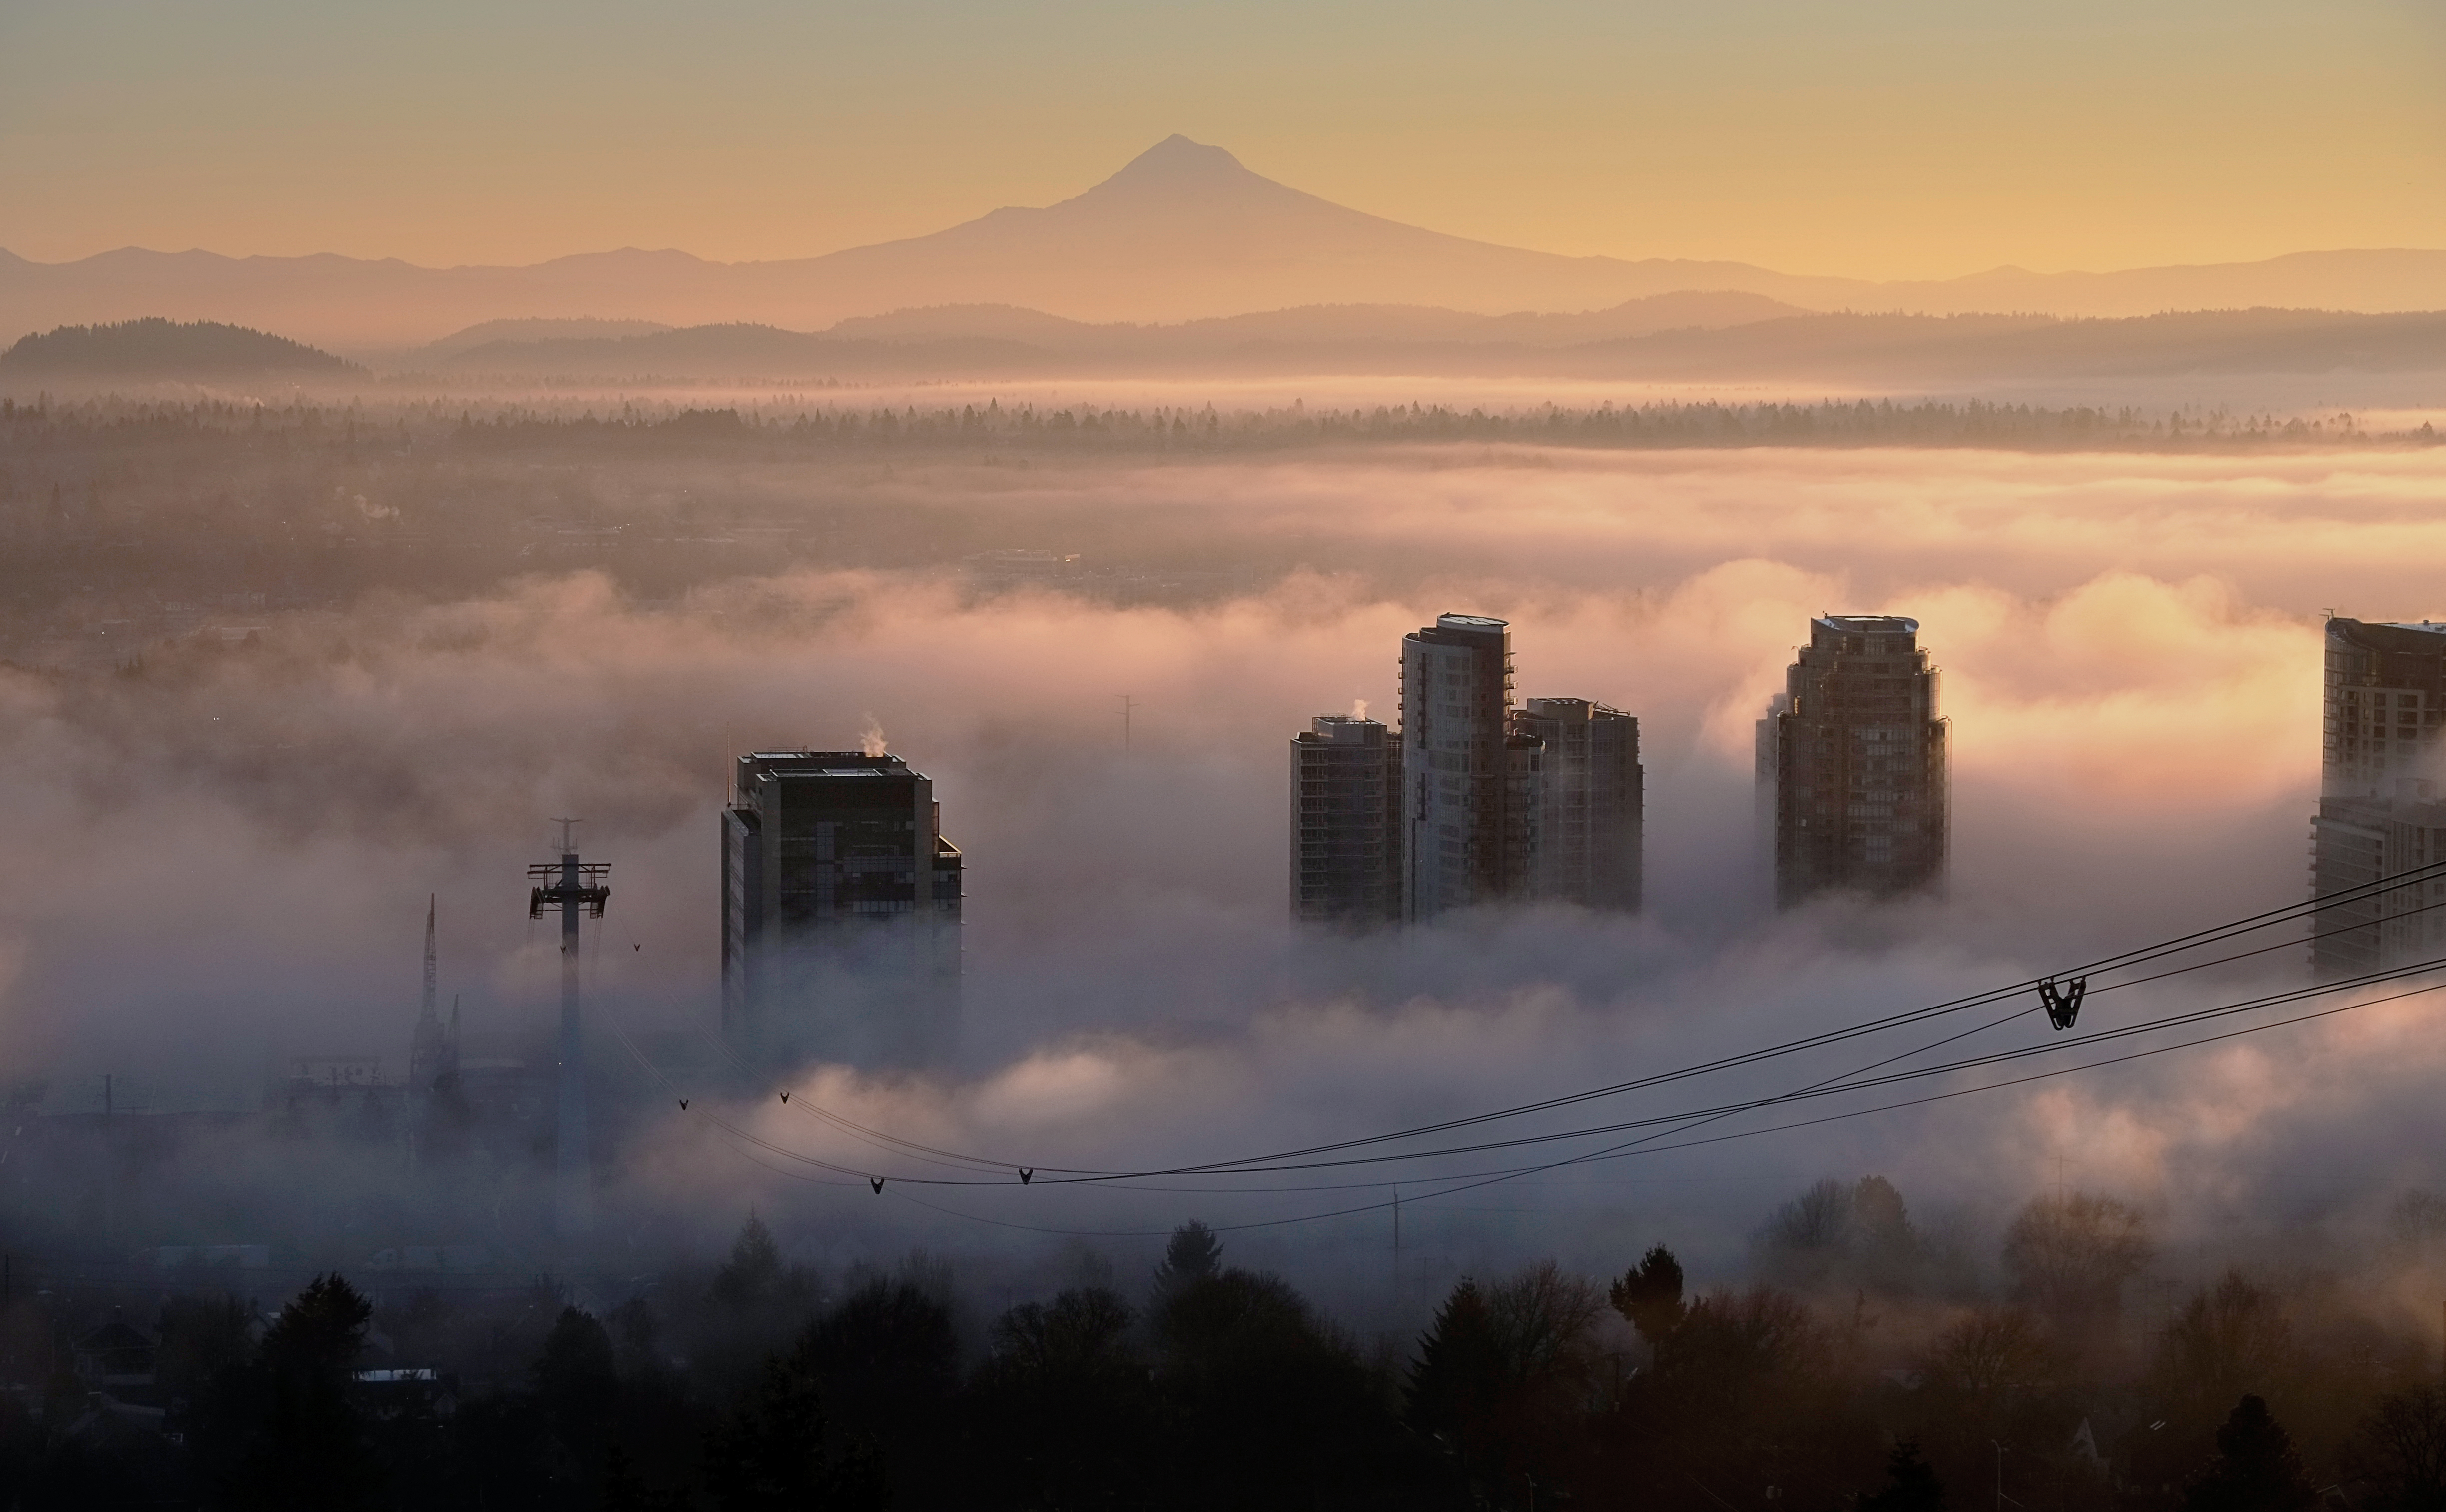 View of Mt Hood in the distance with fog over the South Waterfront